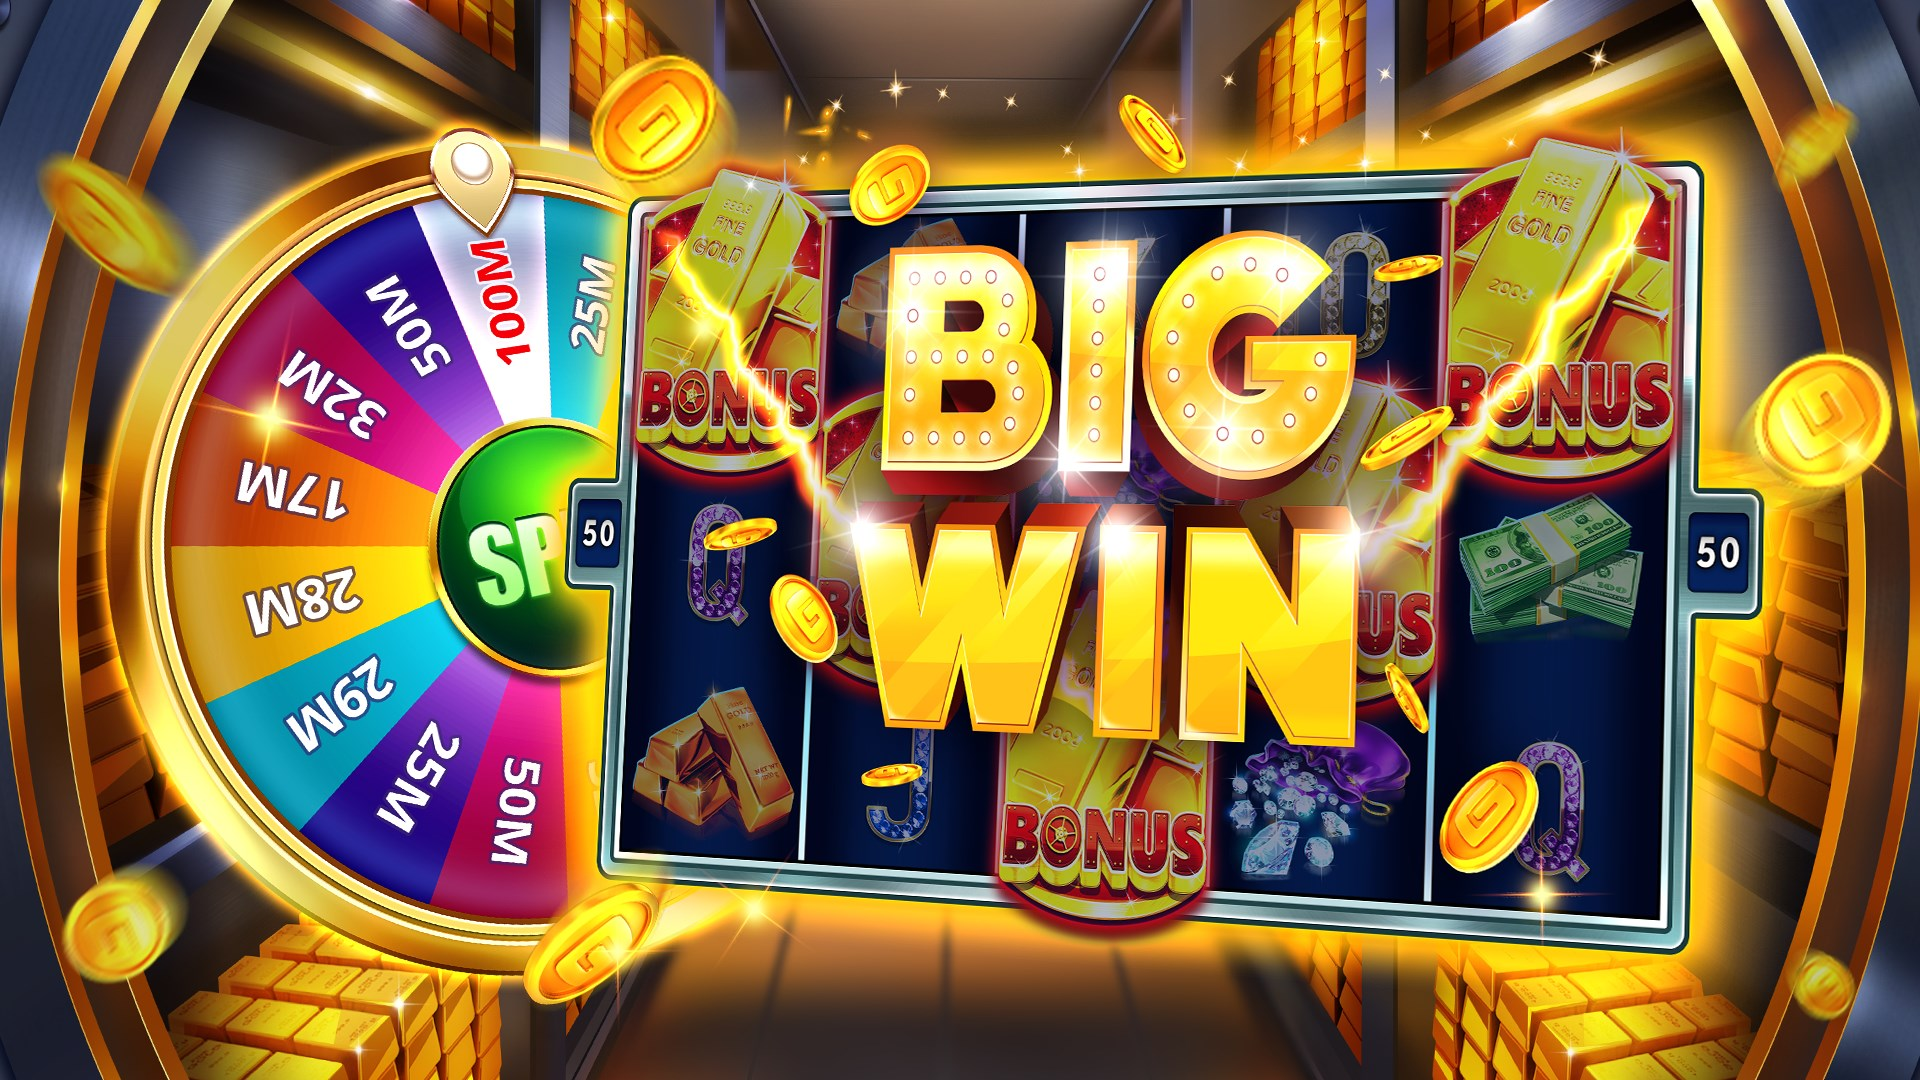 Free Play Casino Games Online